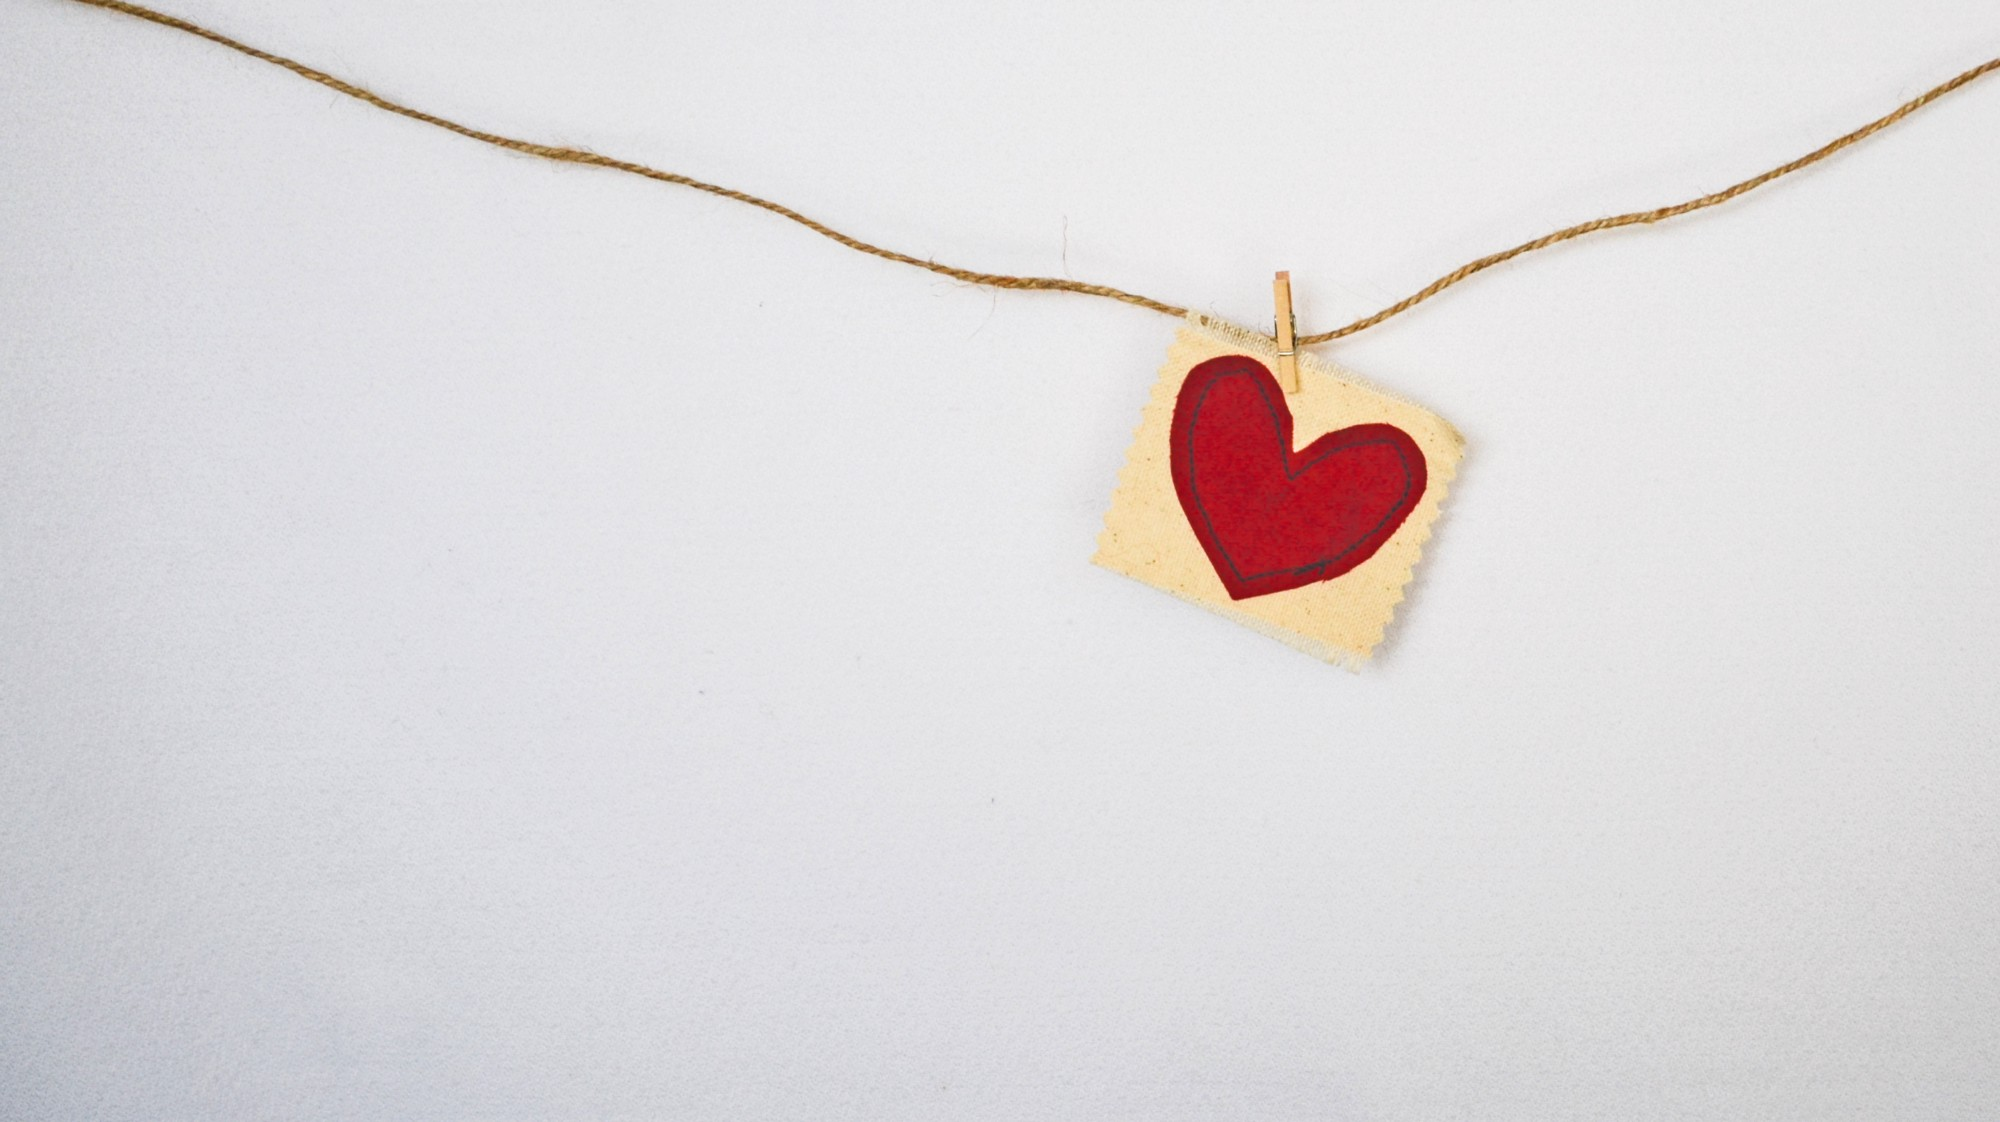 Photo by Debby Hudson on Unsplash—an image of twine with a red heart clothes pinned to it on a blank white wall